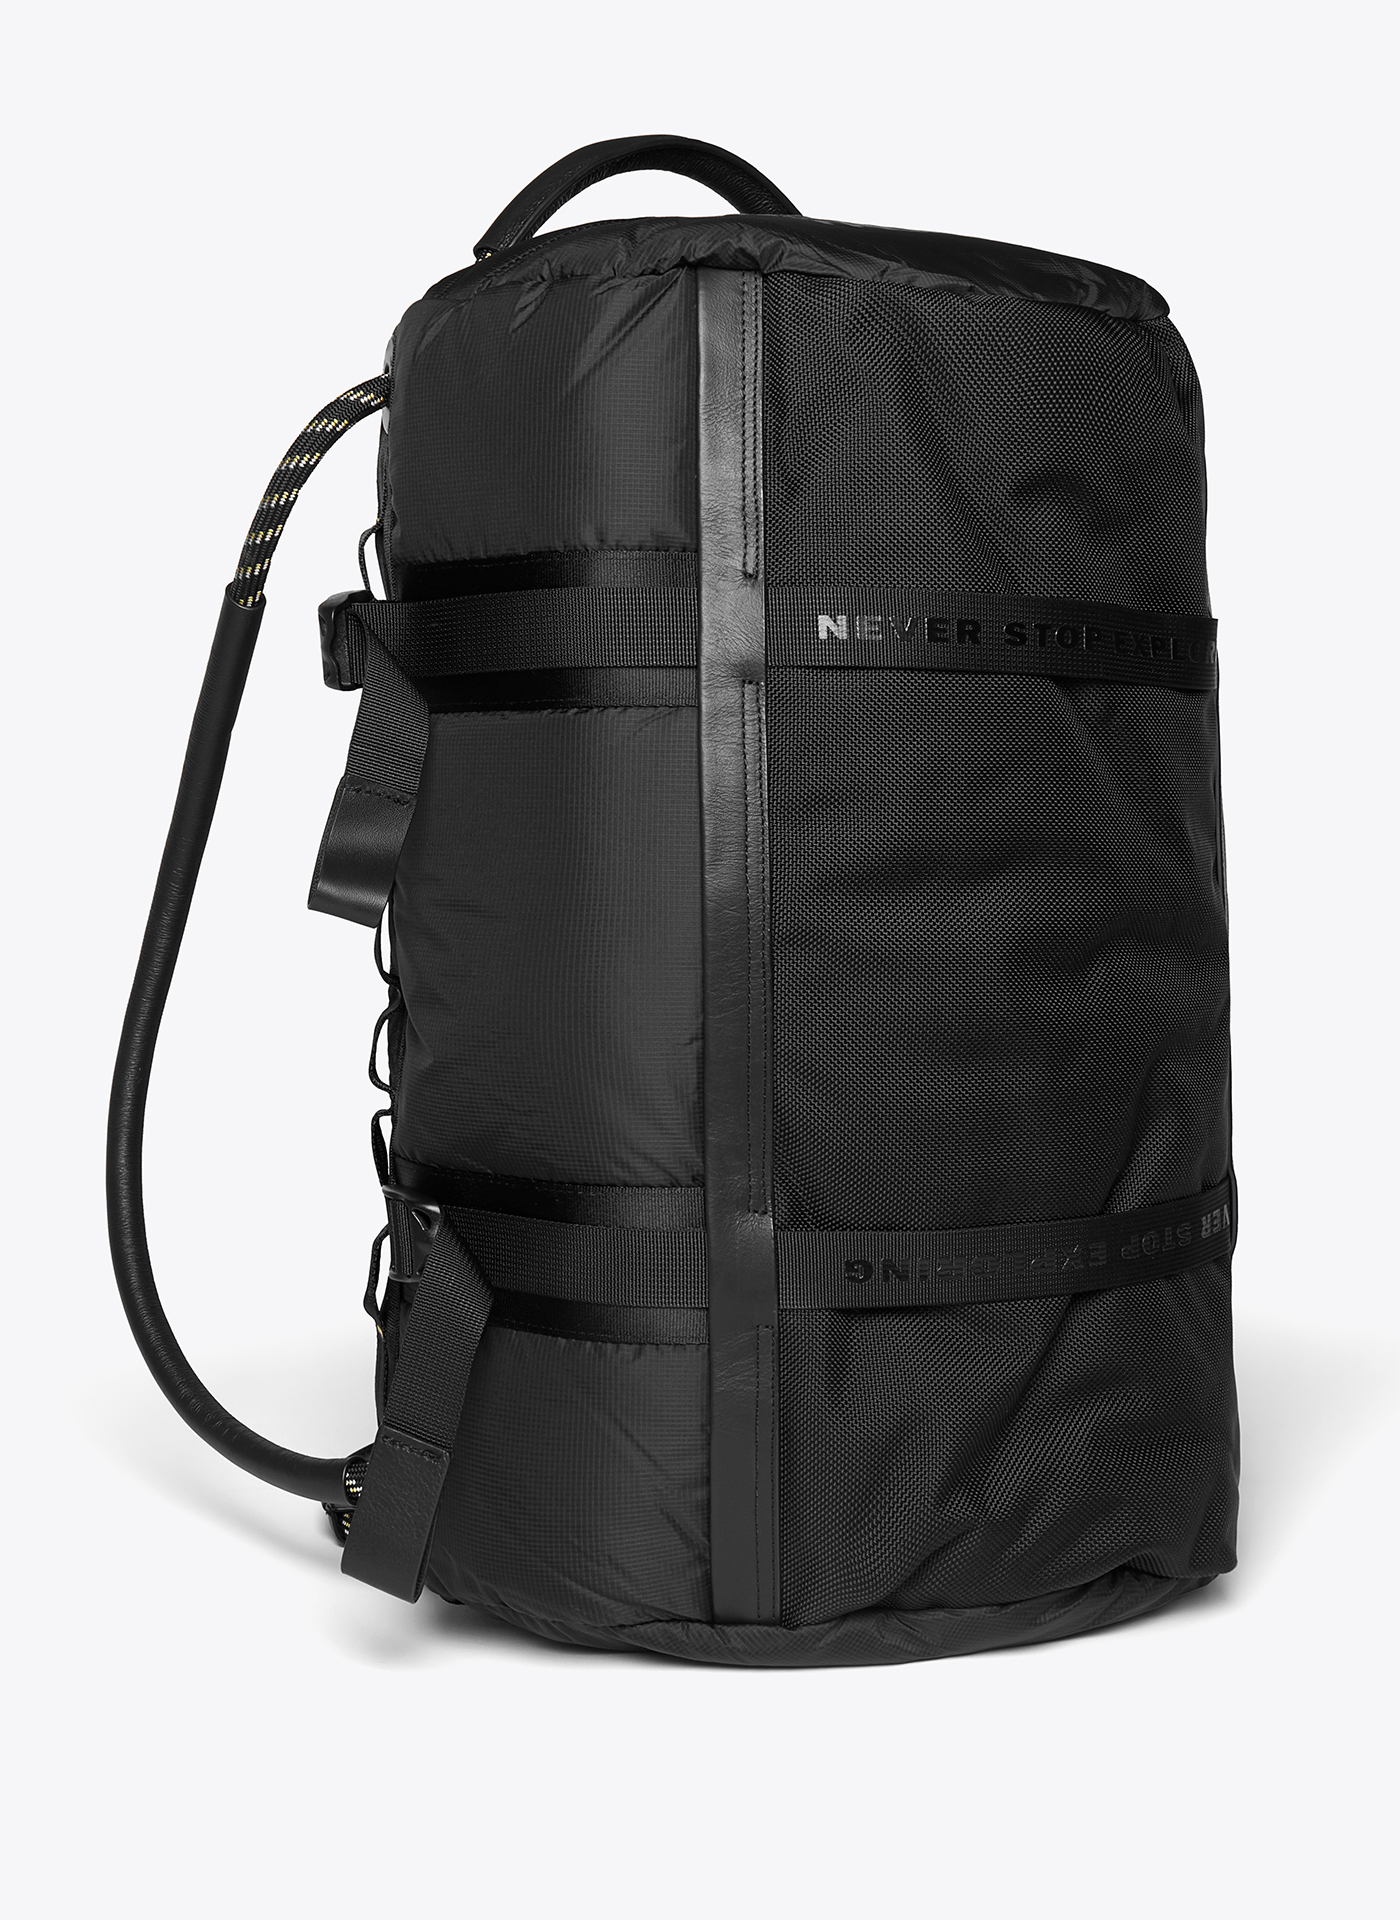 black backpack shot from the side on a white background